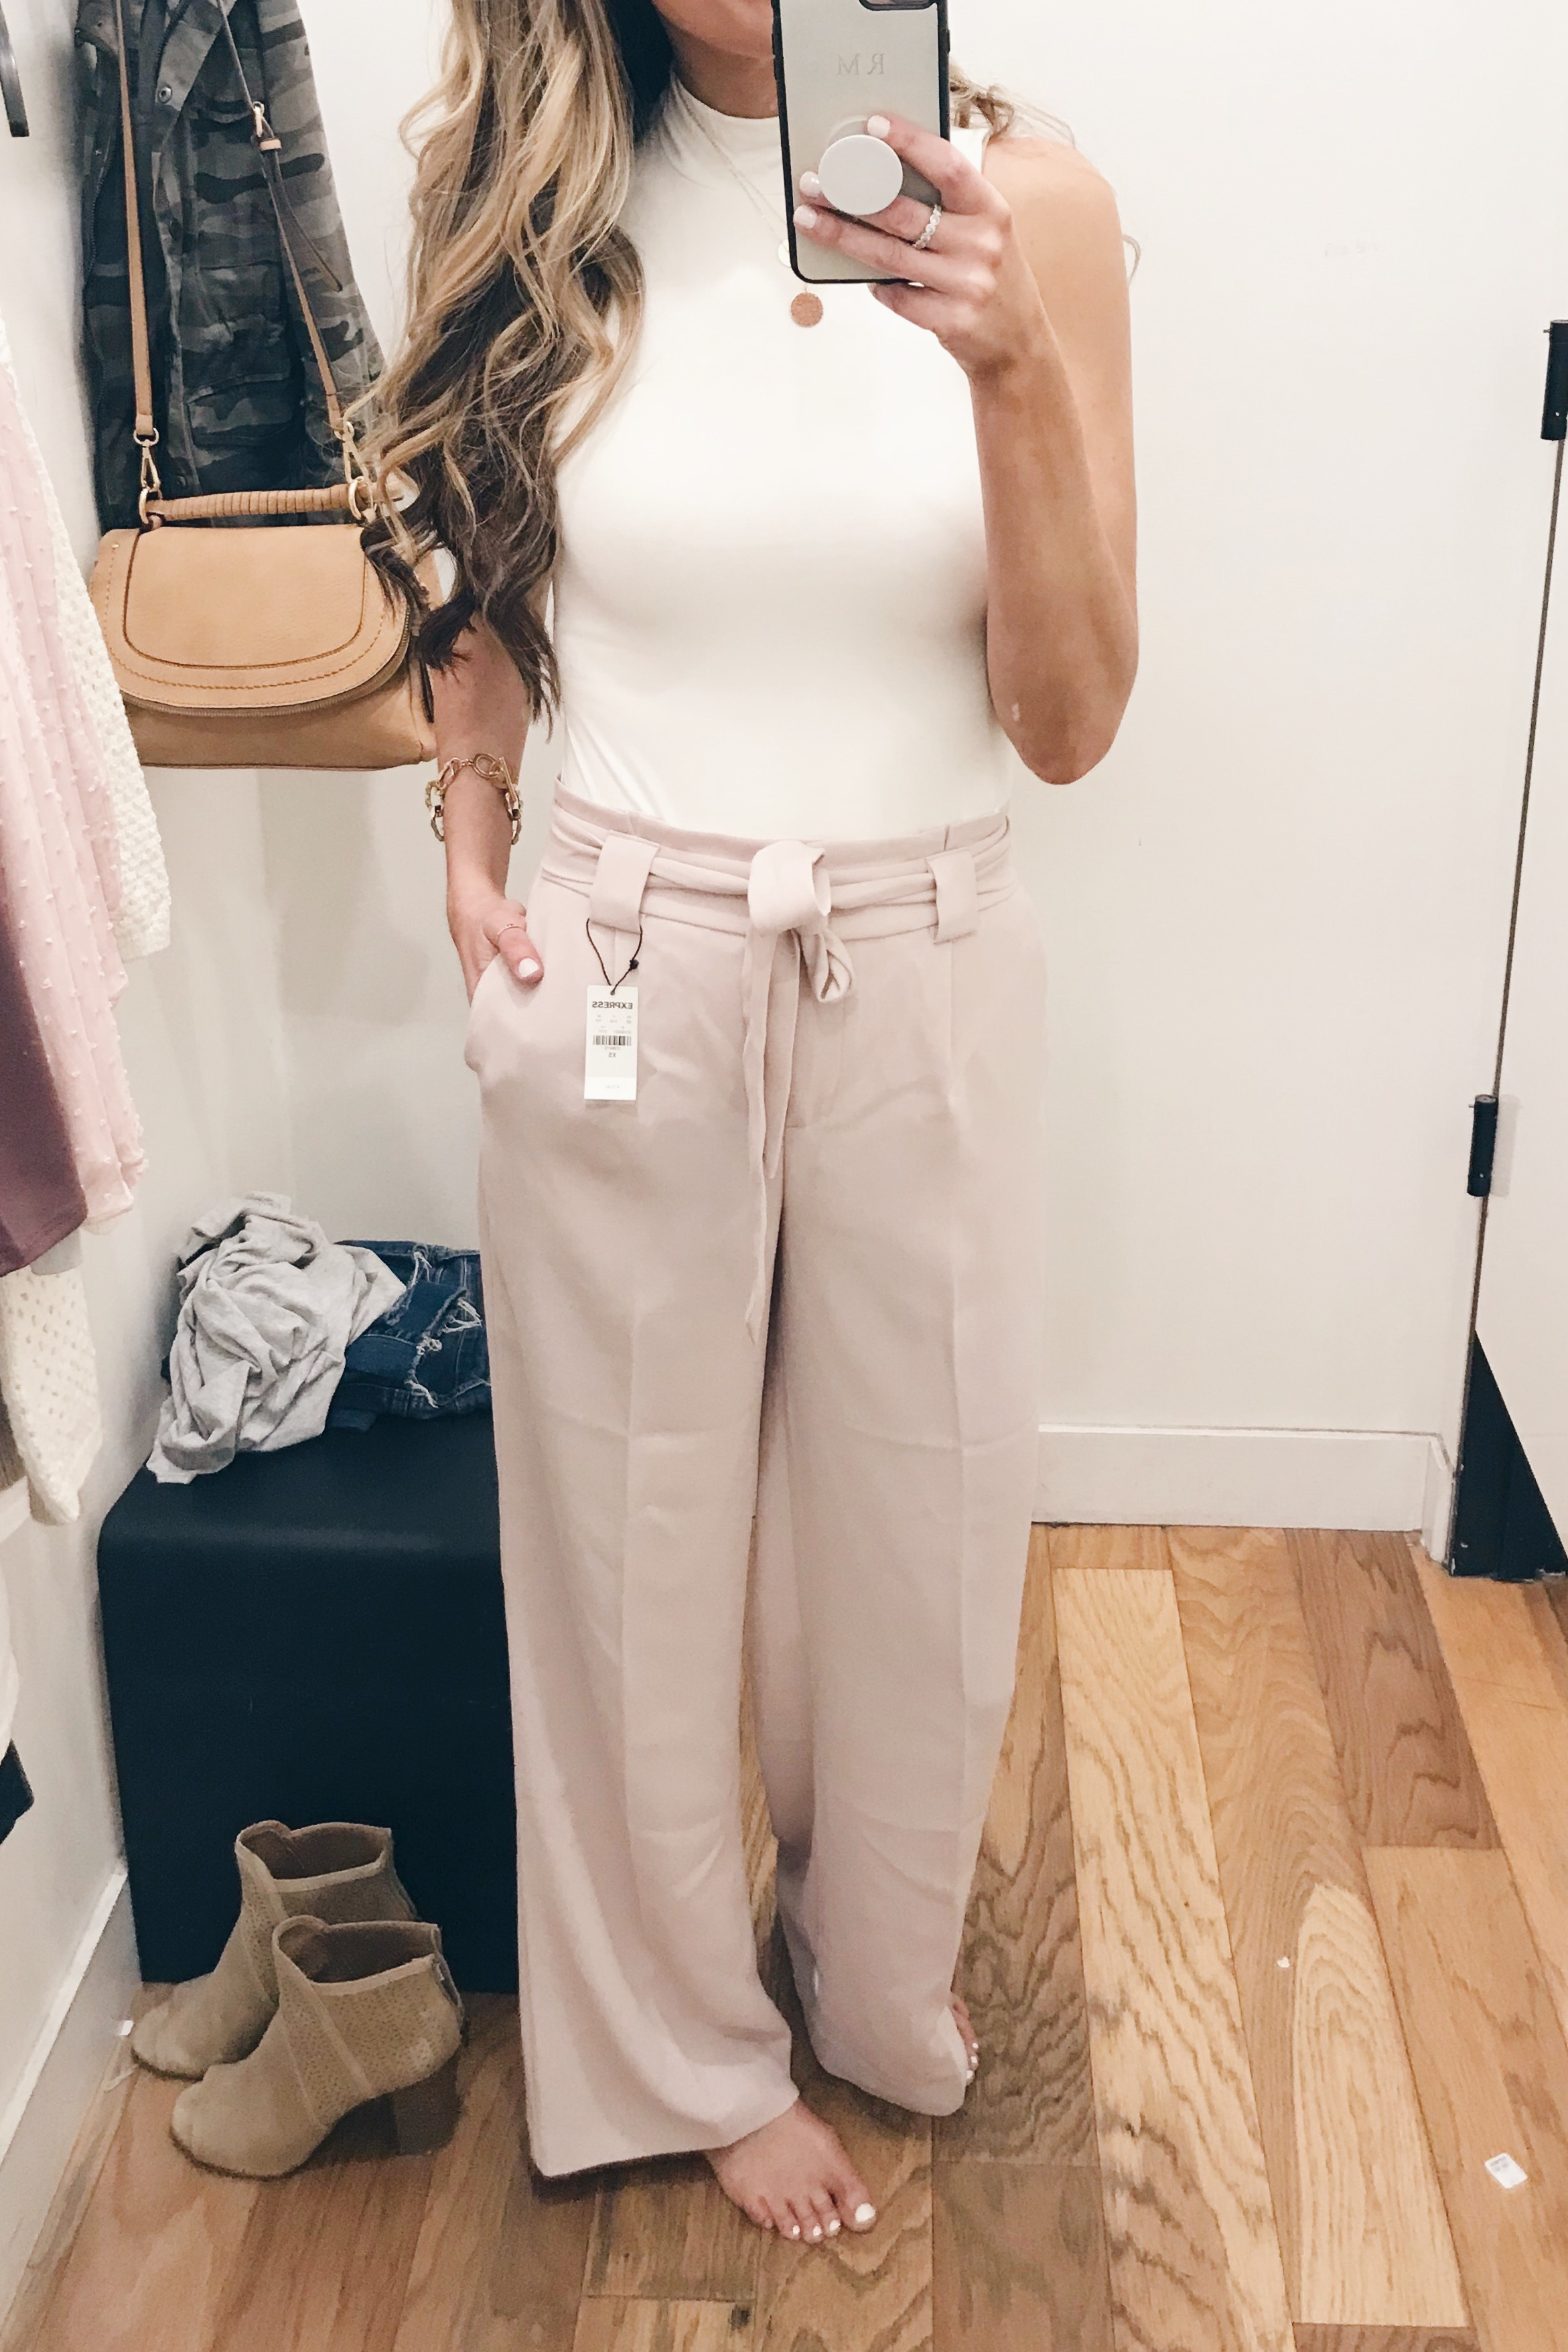 express sale march 2019 try on - wide leg pink pants on Pinteresting Plans blog